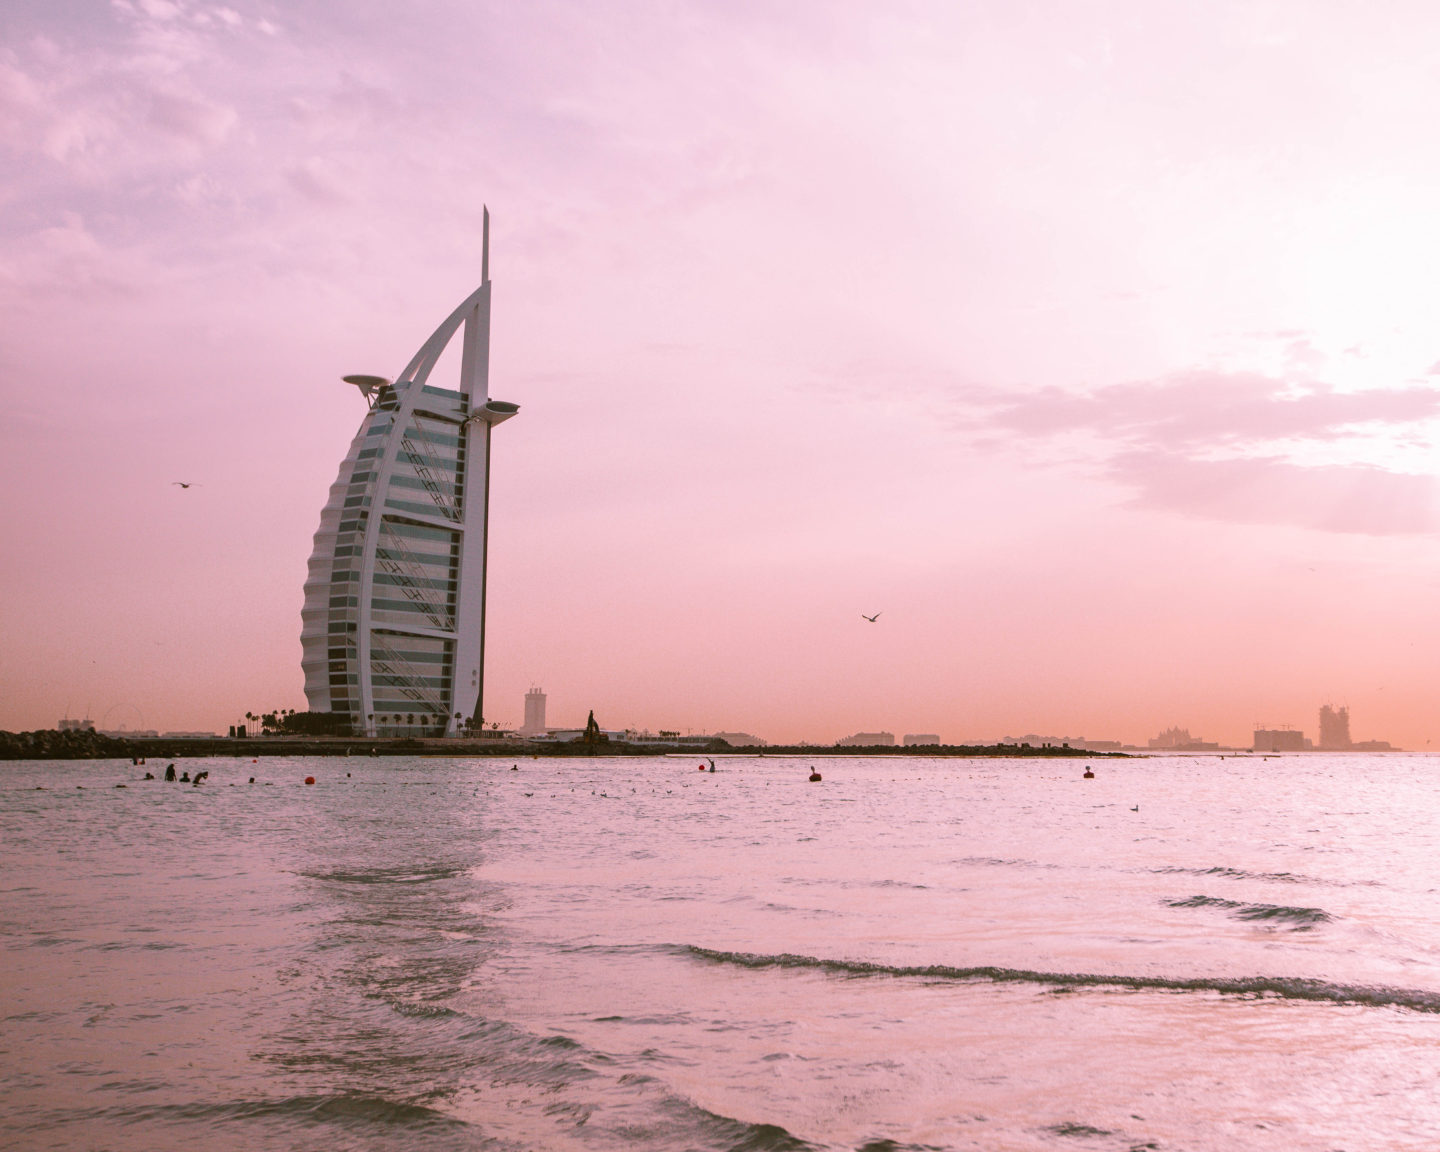 Sunset at Jumeirah Public Beach, with Burj al Arab in the background